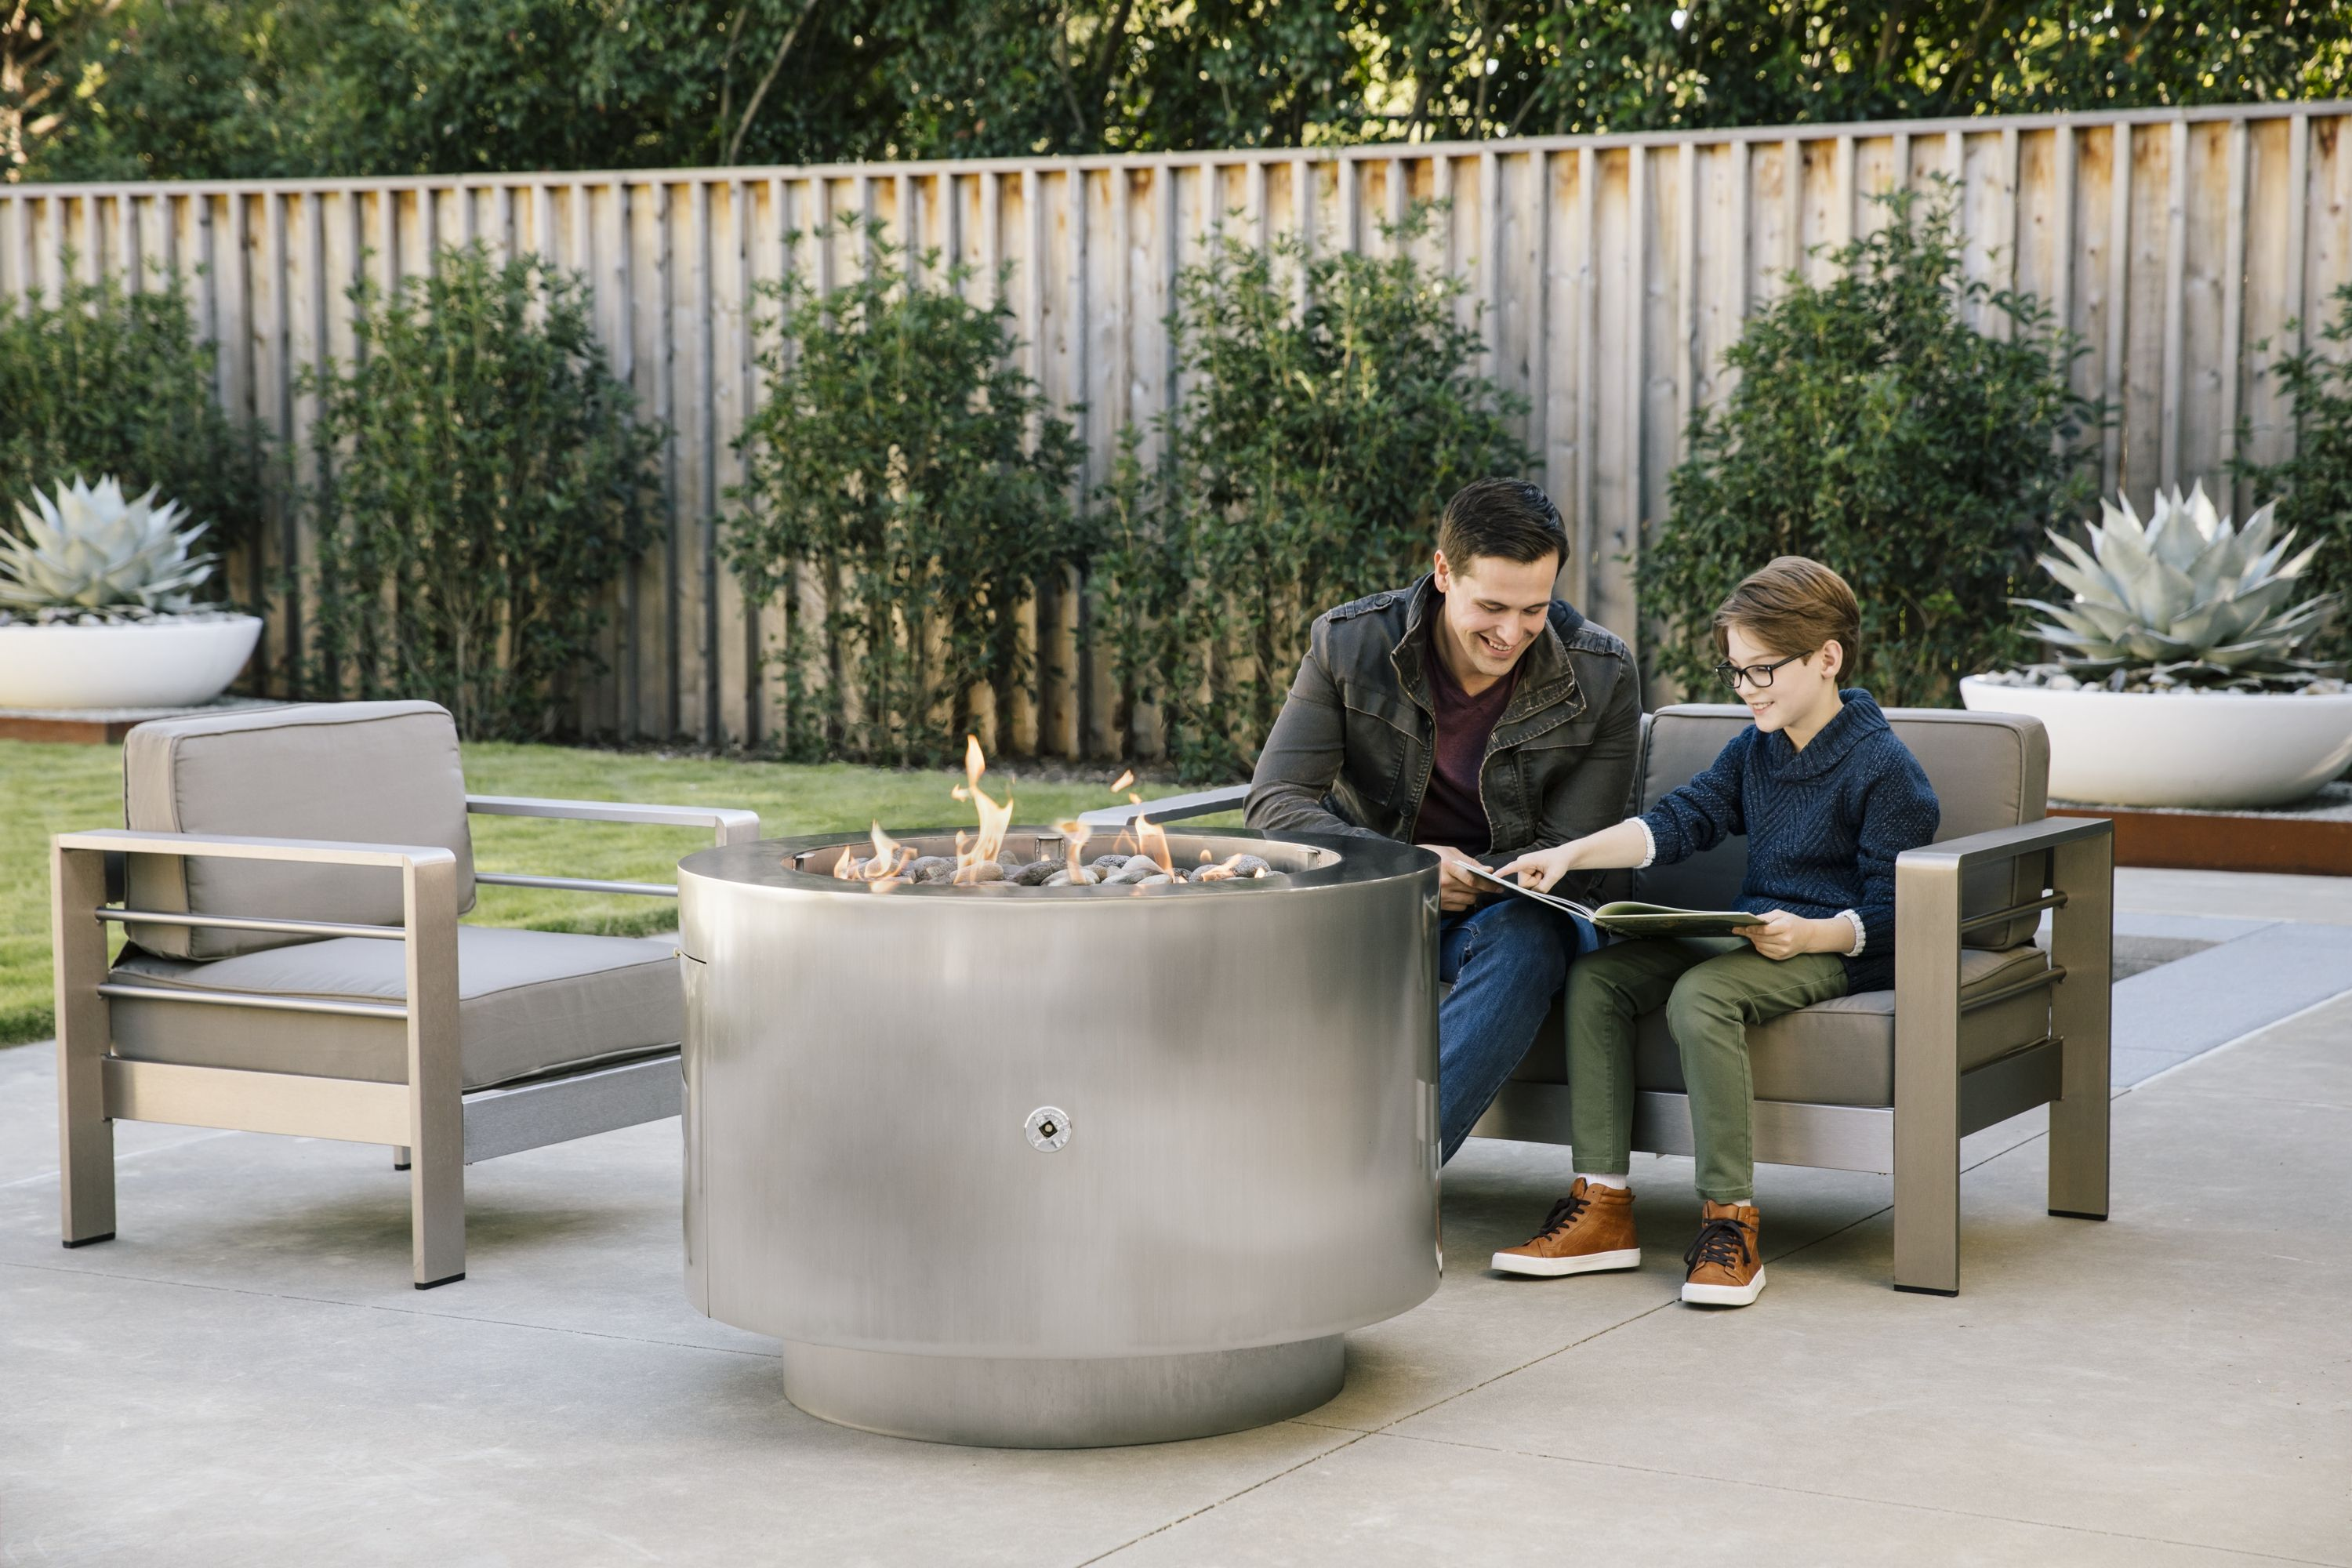 38 Inch Round Stainless Steel Fire Pit Natural Gas Or Remote Propane Stainless Steel Fire Pit Steel Fire Pit Fire Pit